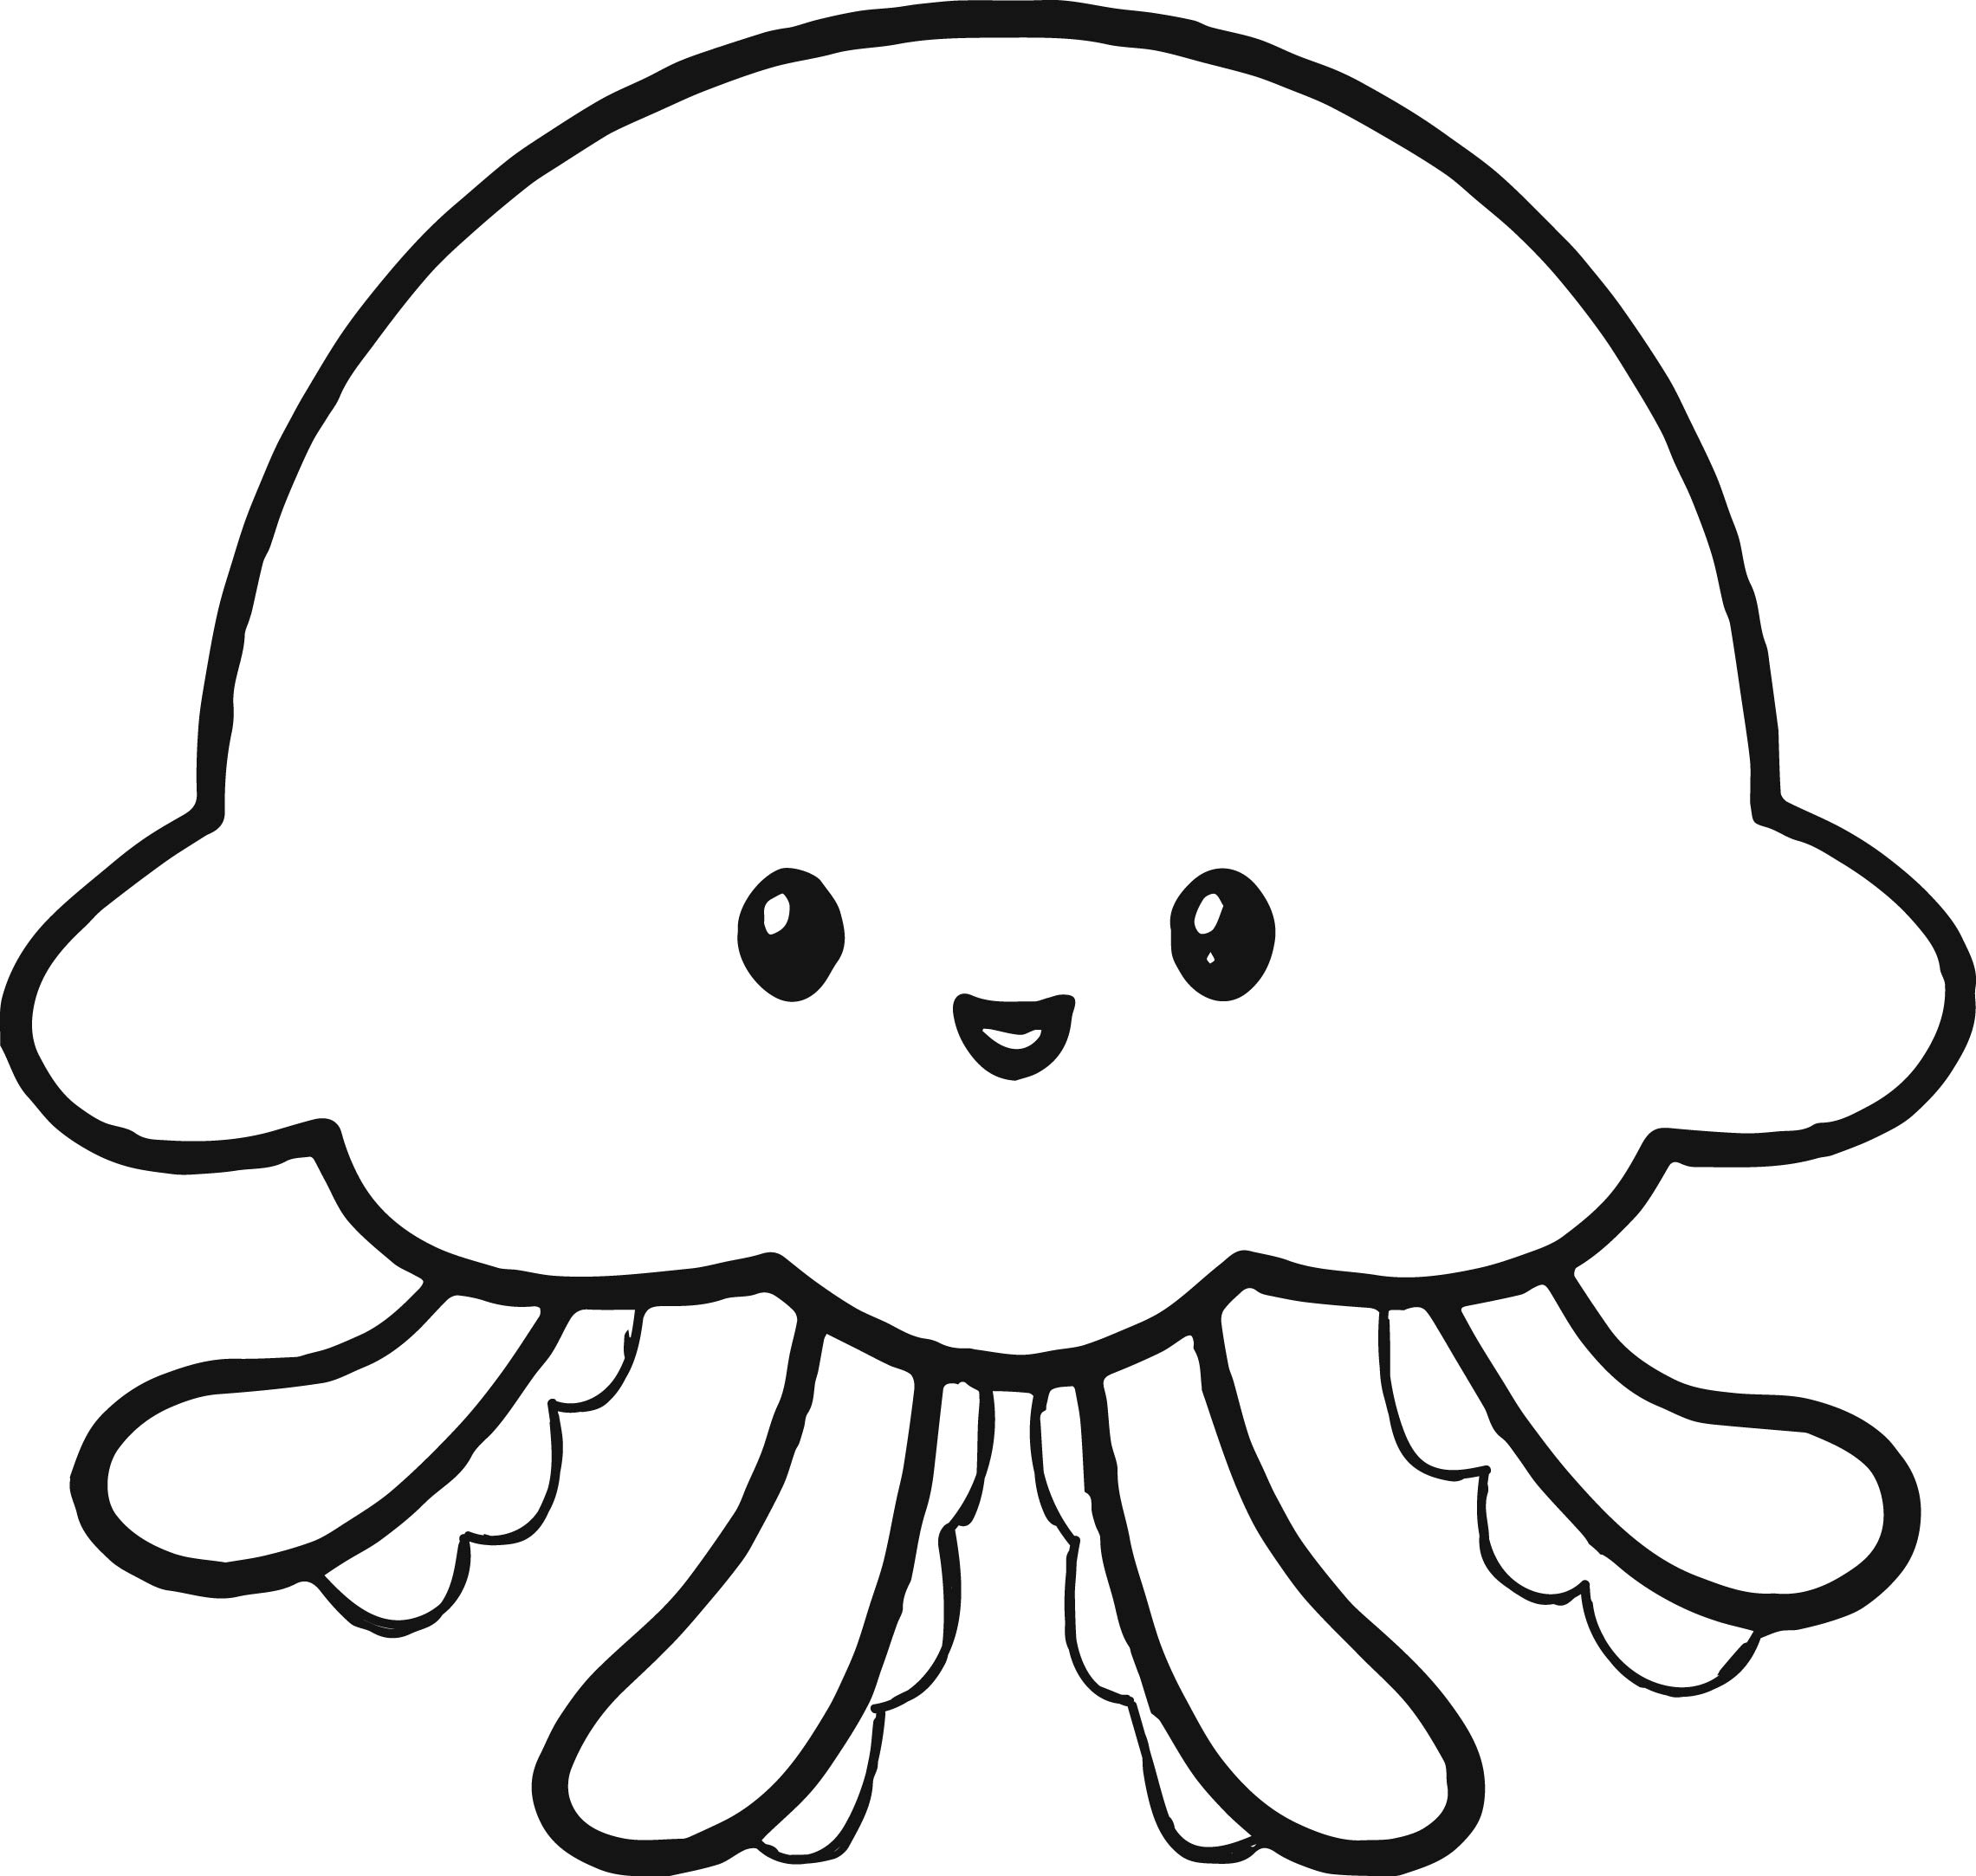 cute crab coloring pages crab coloring pages by mason free printables crab coloring pages cute